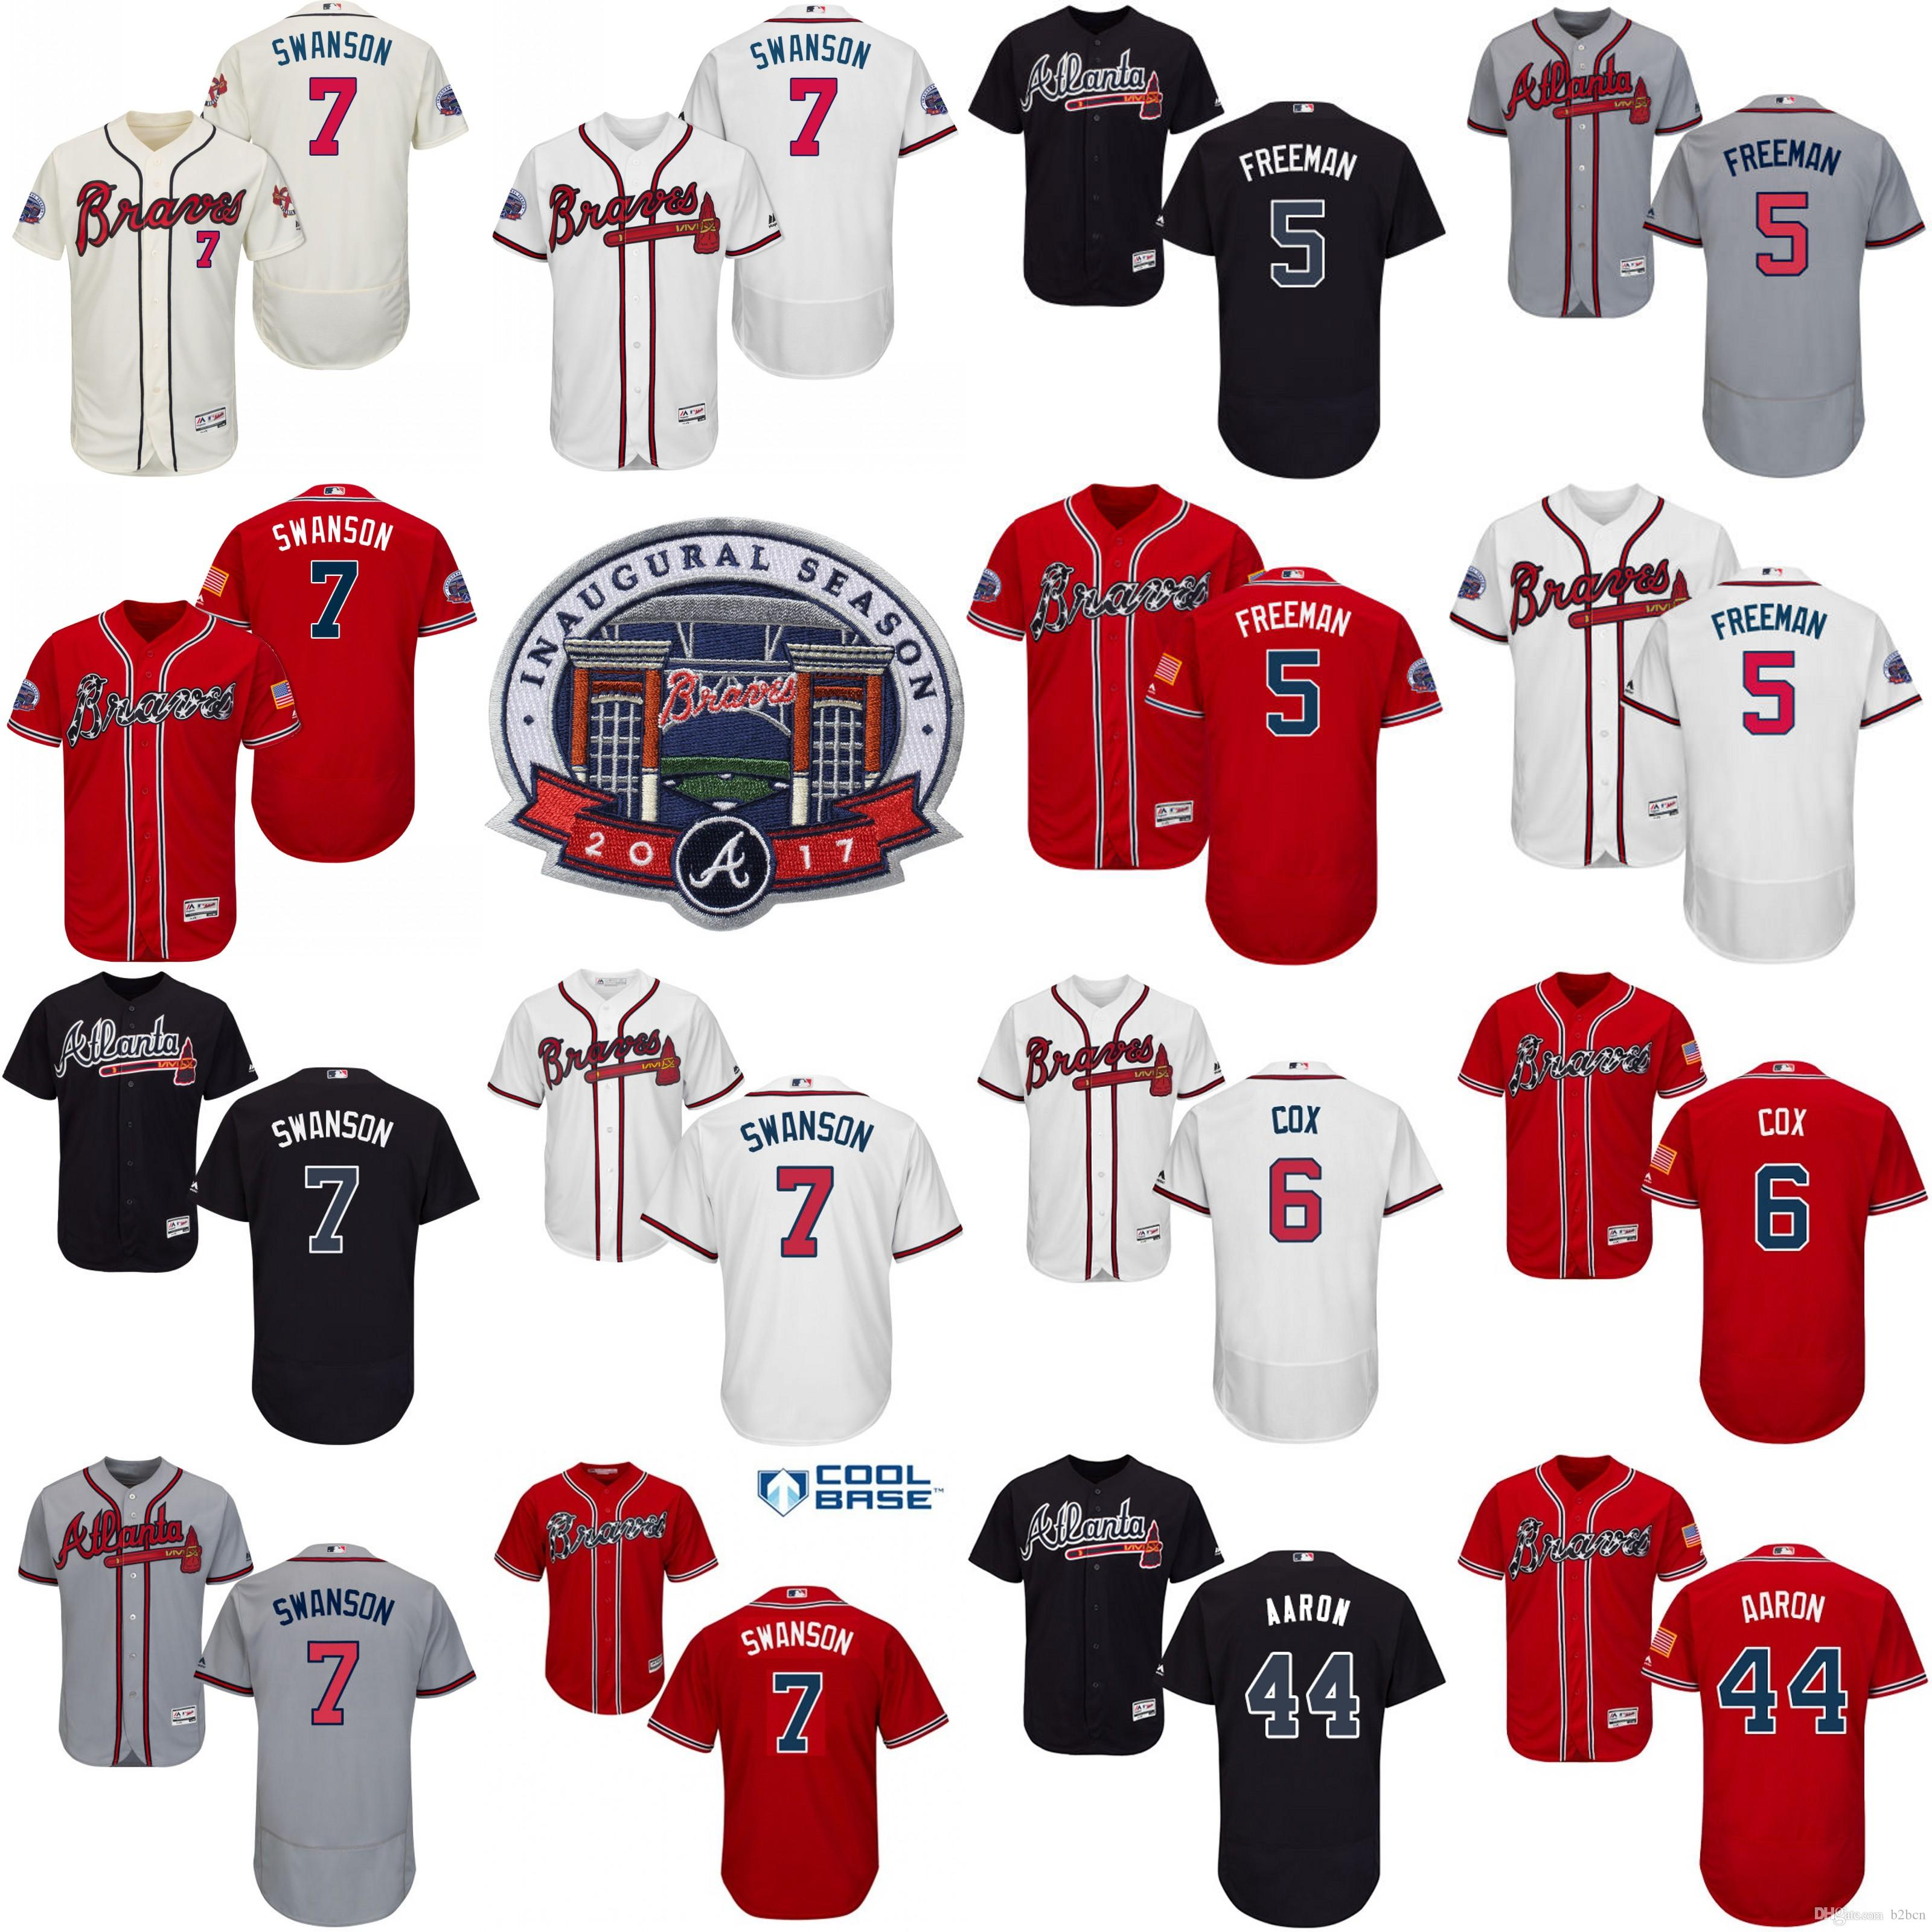 2017 Patch commémoratif Atlanta Braves Hommes # 7 Dansby Swanson 5 Freddie Freem